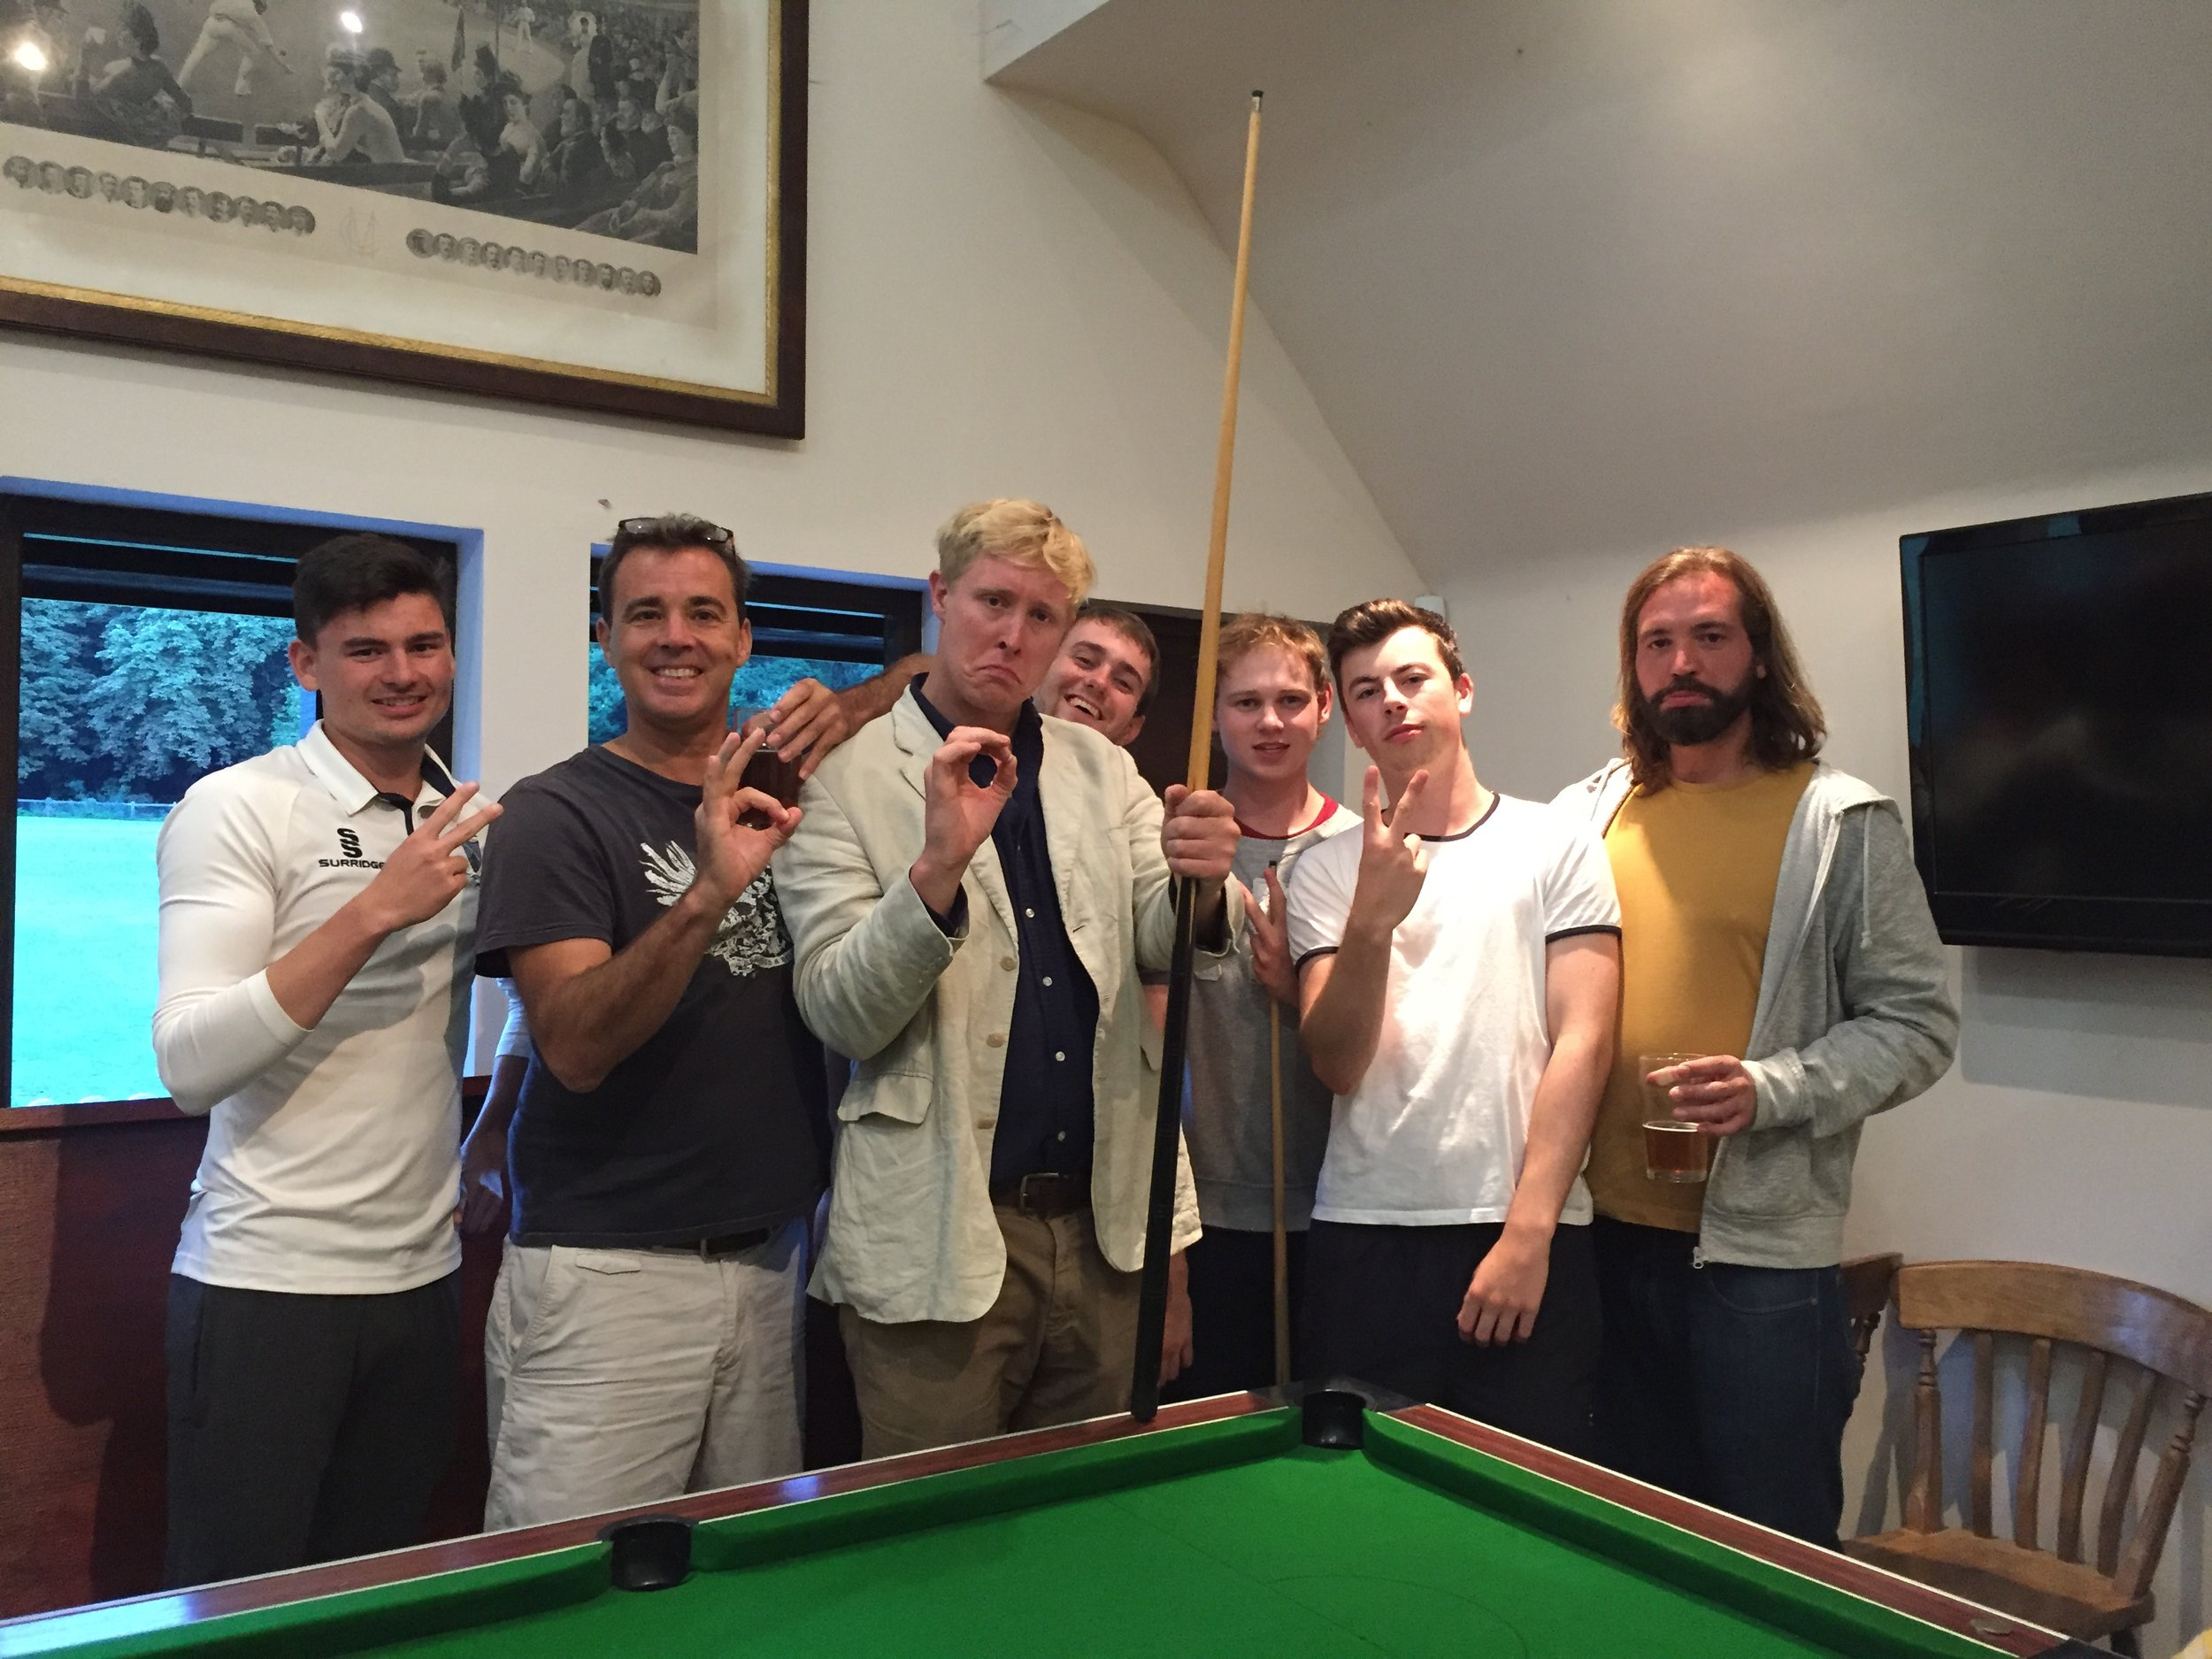 Outwood were upset about the loss and Captain Matt about being called a p&^&(k by Runky, but gained compensation in the pool ( the runky didn't help us there either)